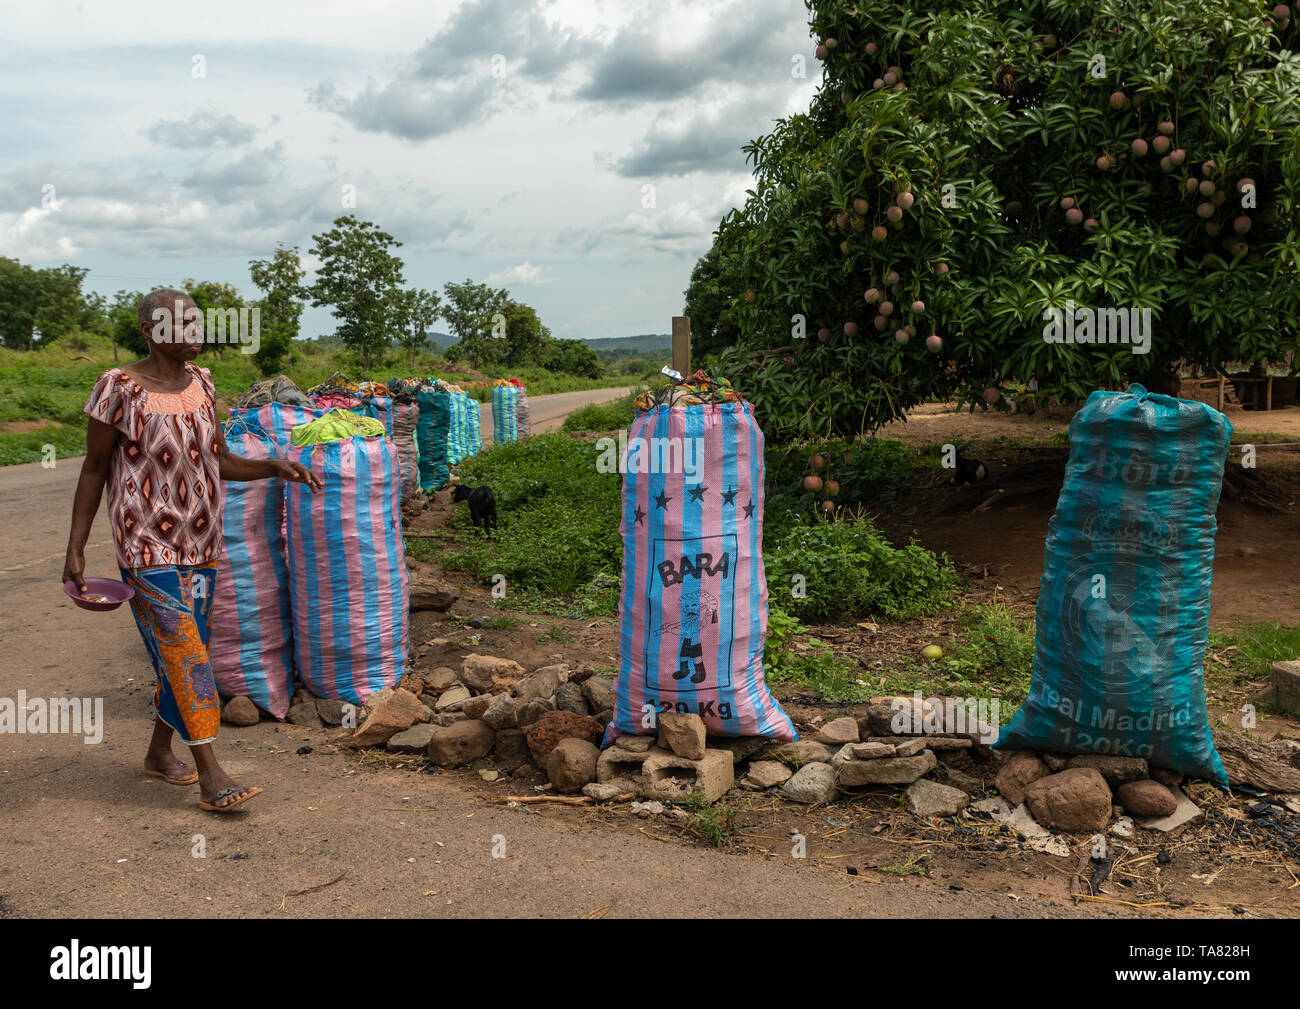 Coal for sale in big bags along the road, Bafing, Yo, Ivory Coast Stock Photo